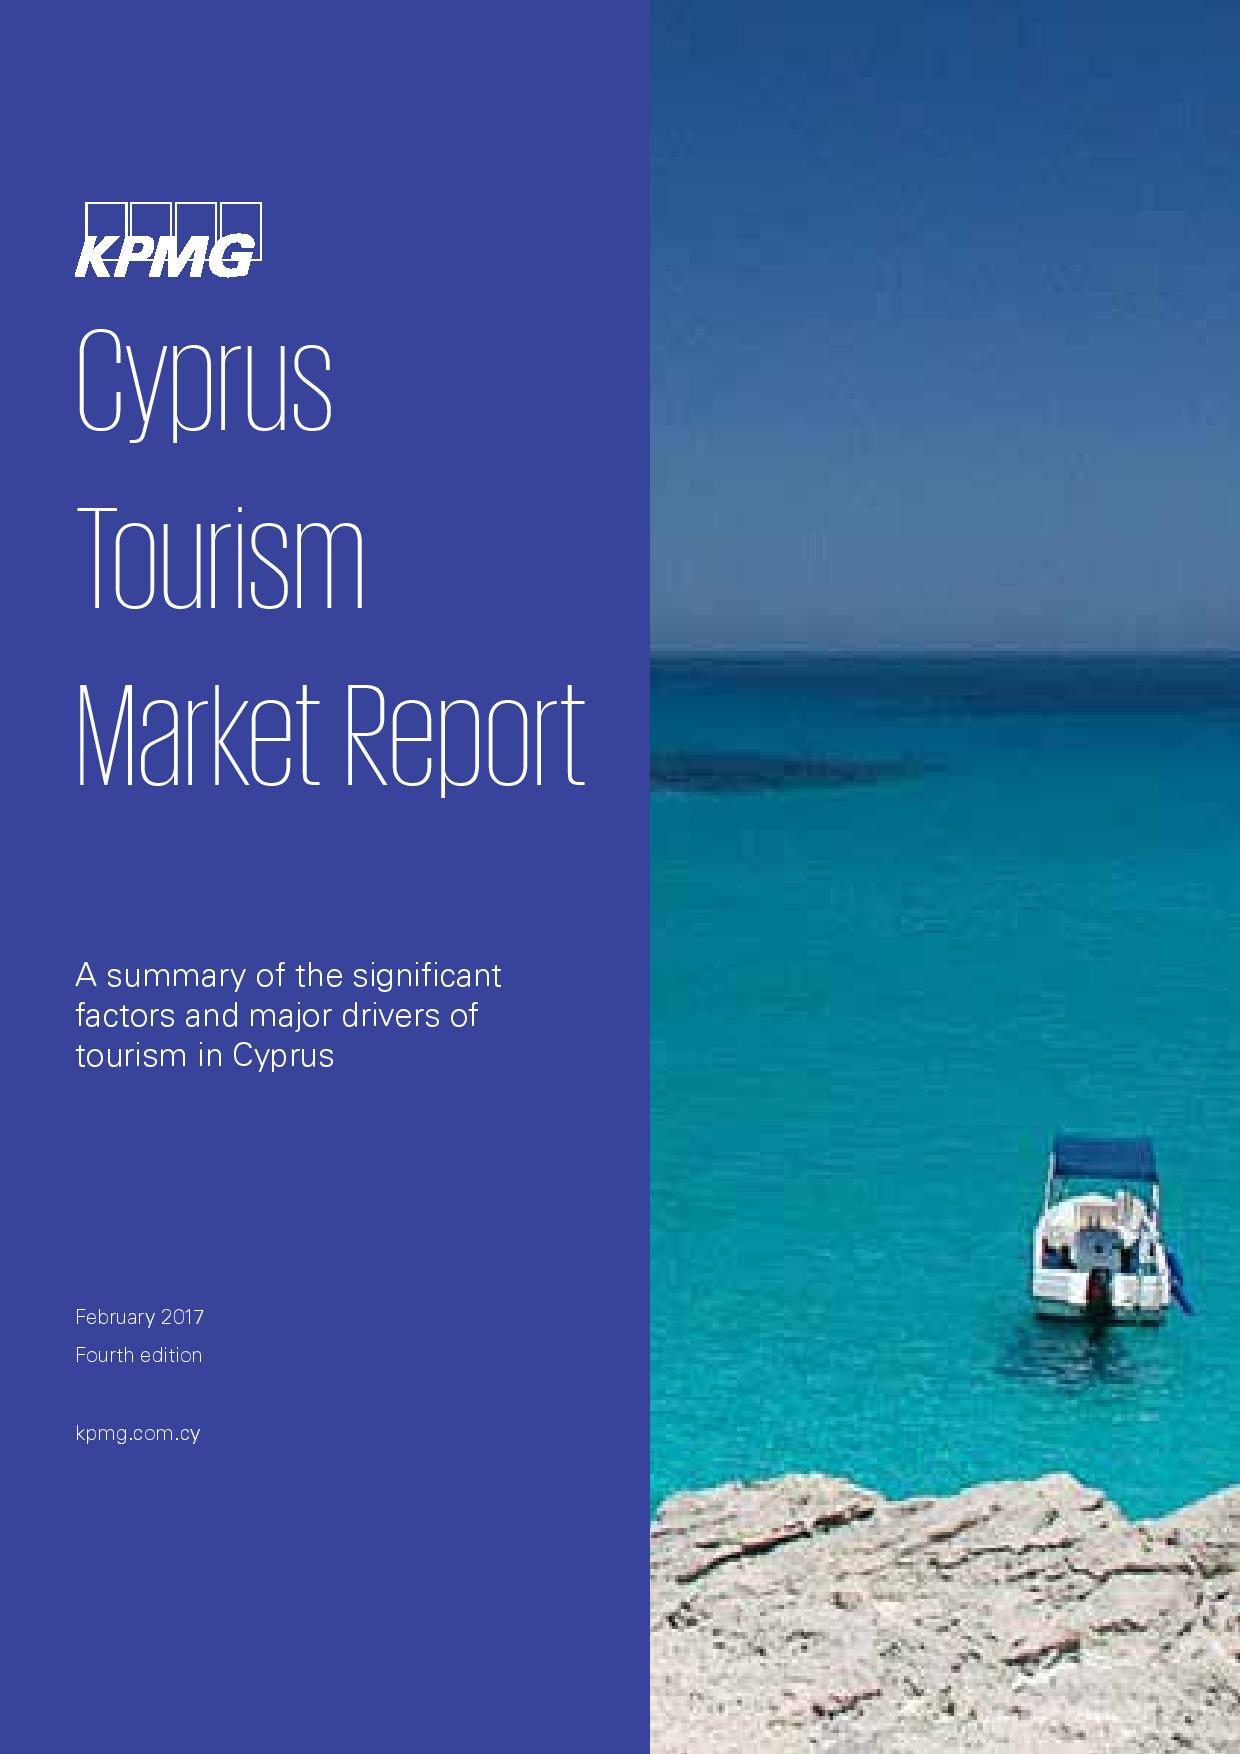 Cyprus Tourism Market Report